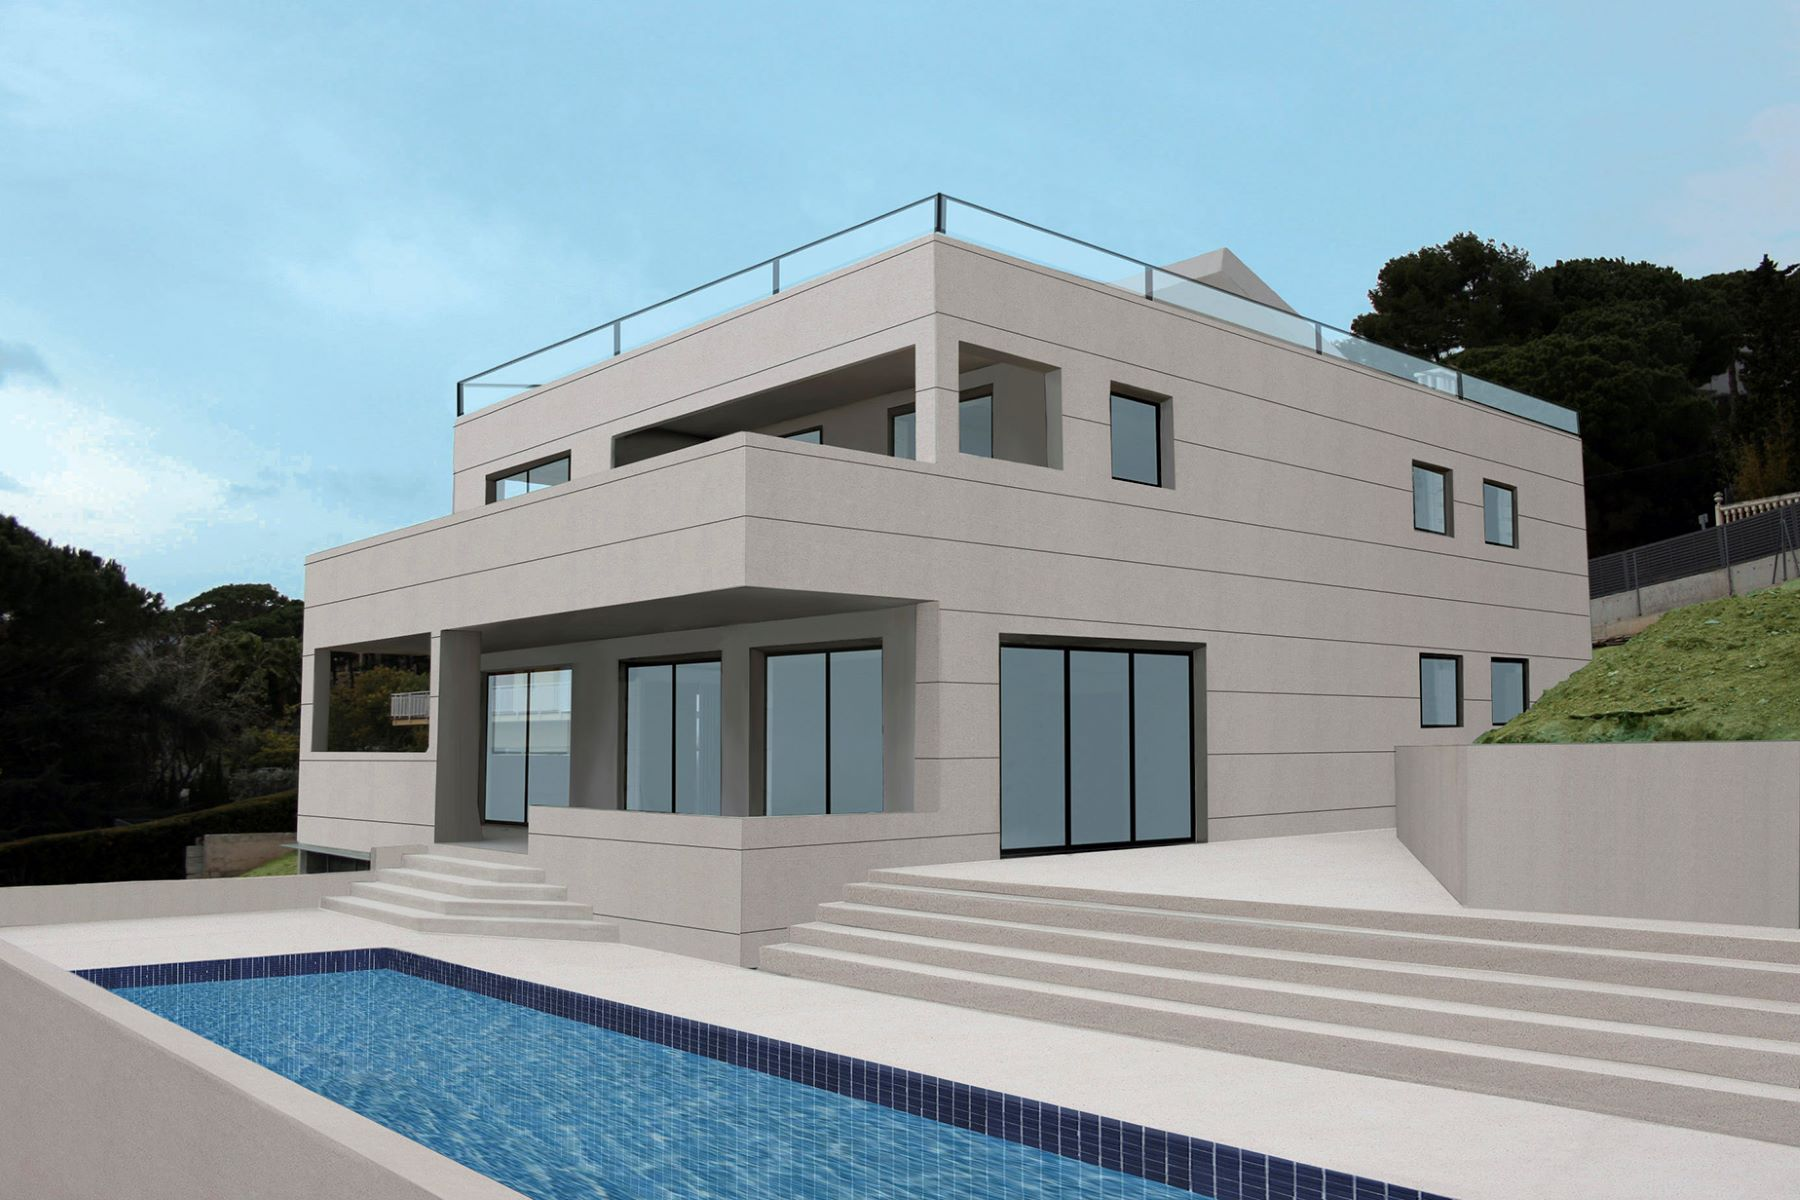 Maison unifamiliale pour l Vente à Newly built detached house in Cabrils Cabrils, Barcelona, 08348 Espagne